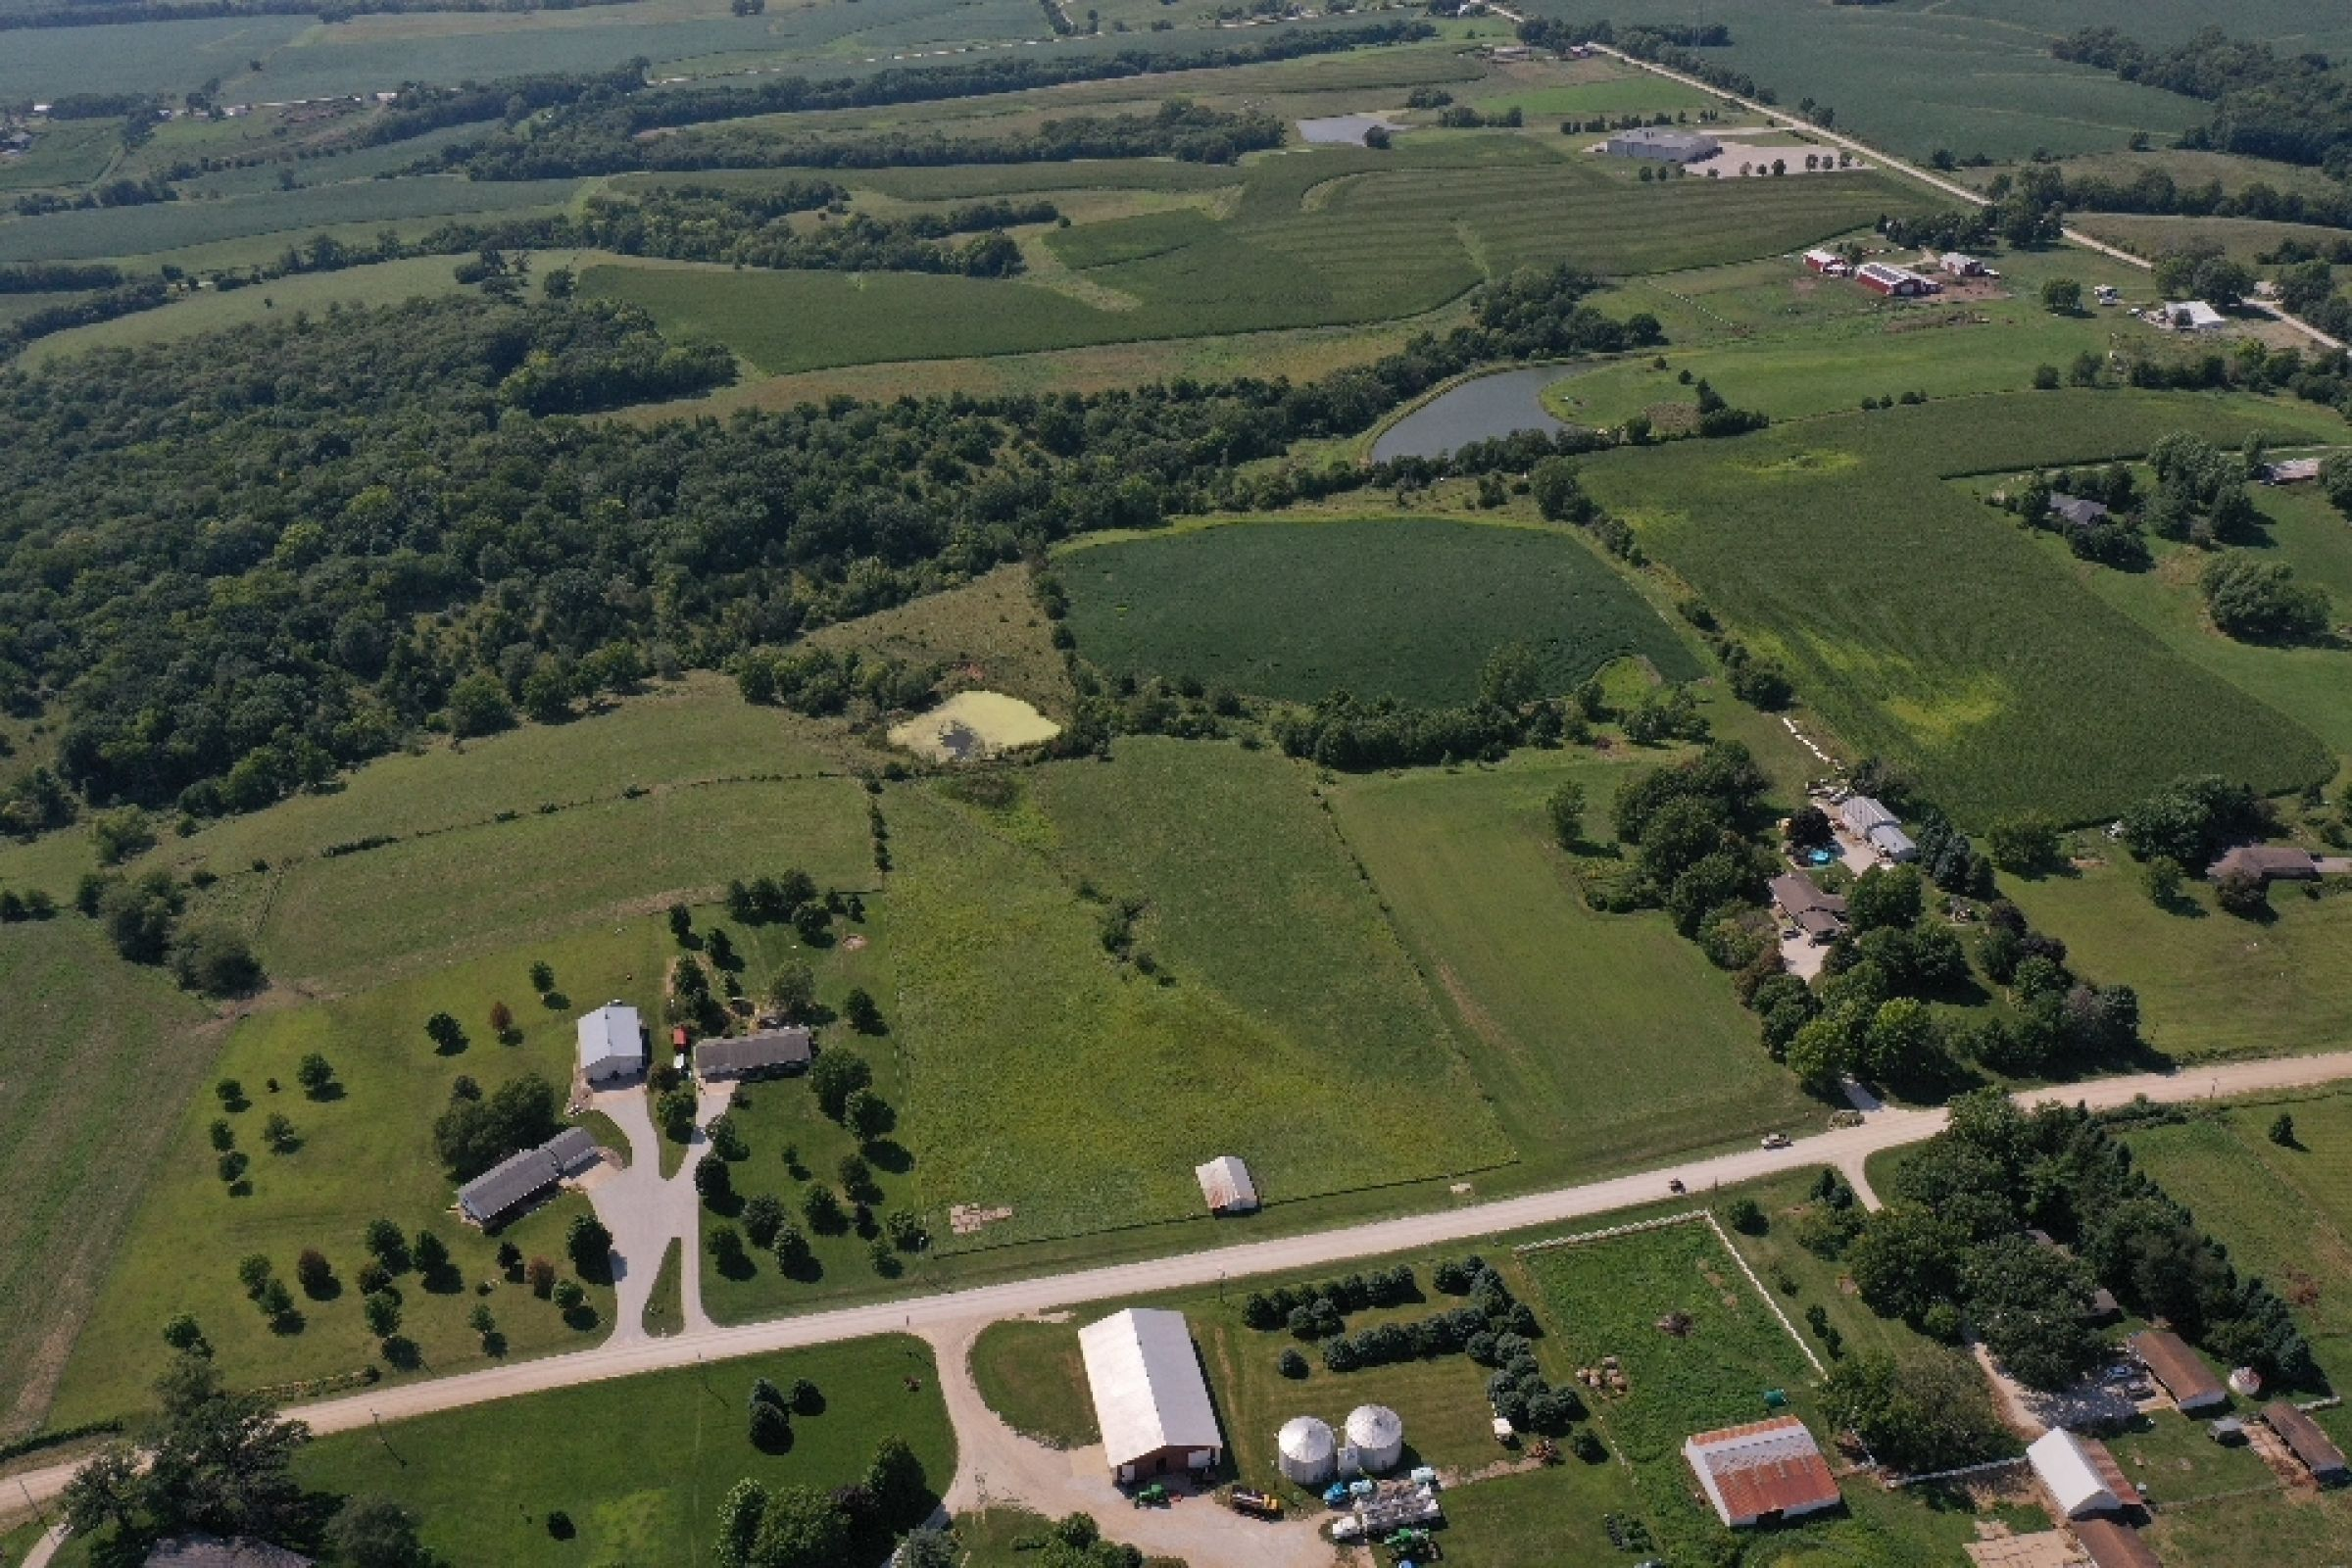 residential-land-warren-county-iowa-29-acres-listing-number-15120-0-2020-08-20-195120.jpg